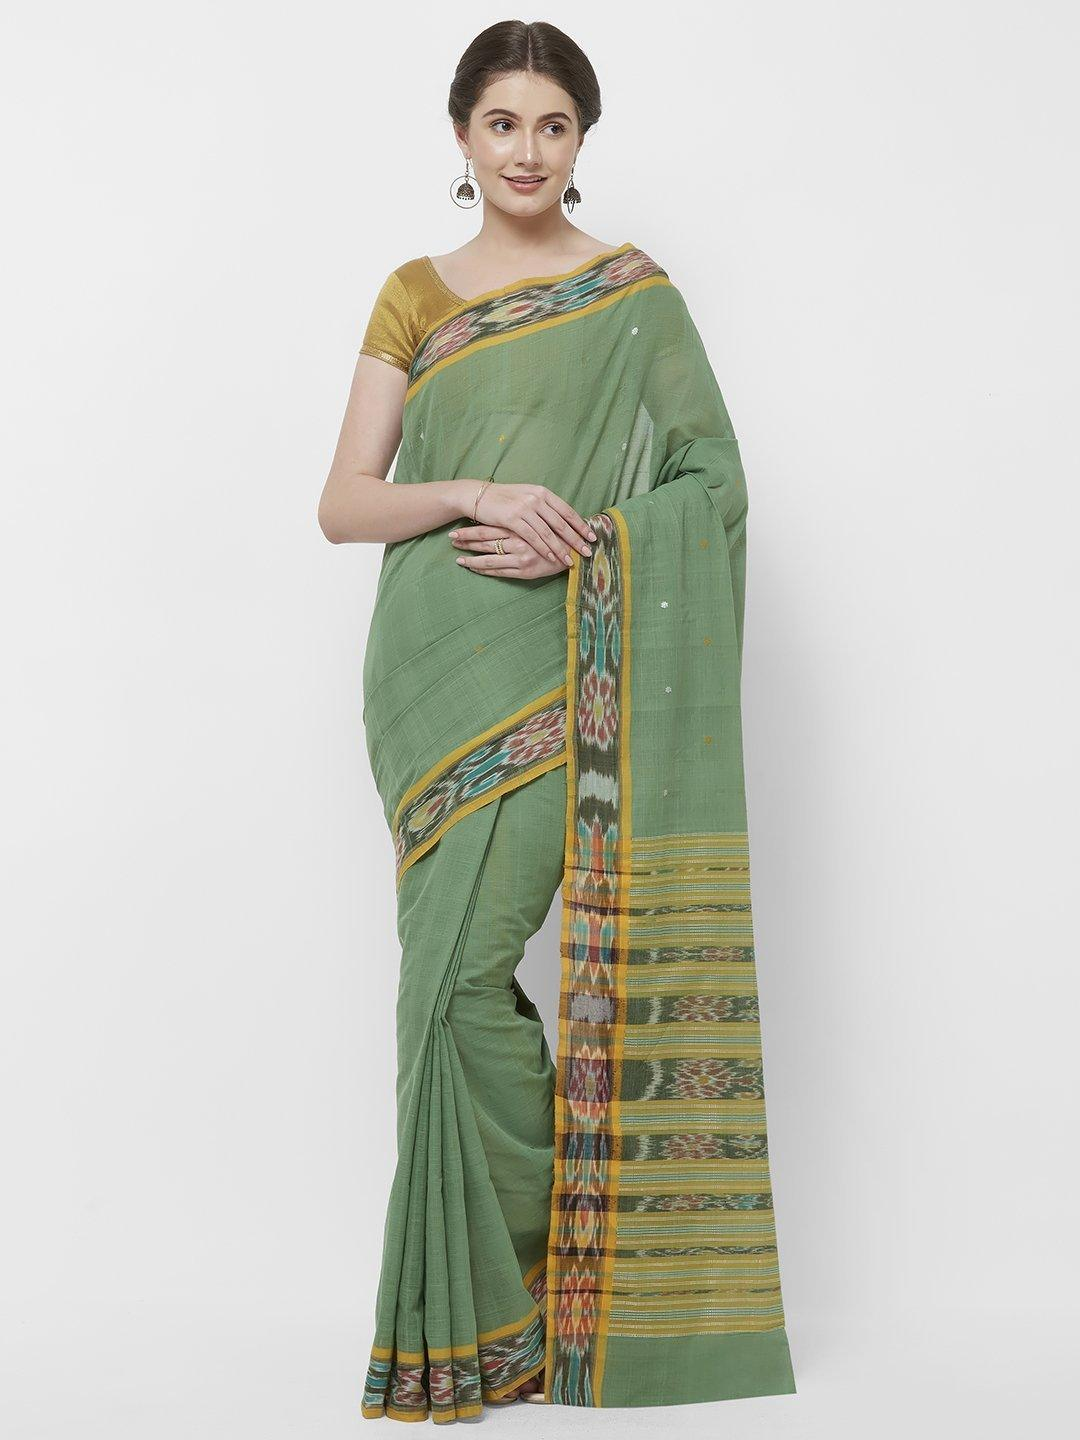 CraftsCollection.in -Green Odisha Cotton Saree with matching Sambalpuri Blouse